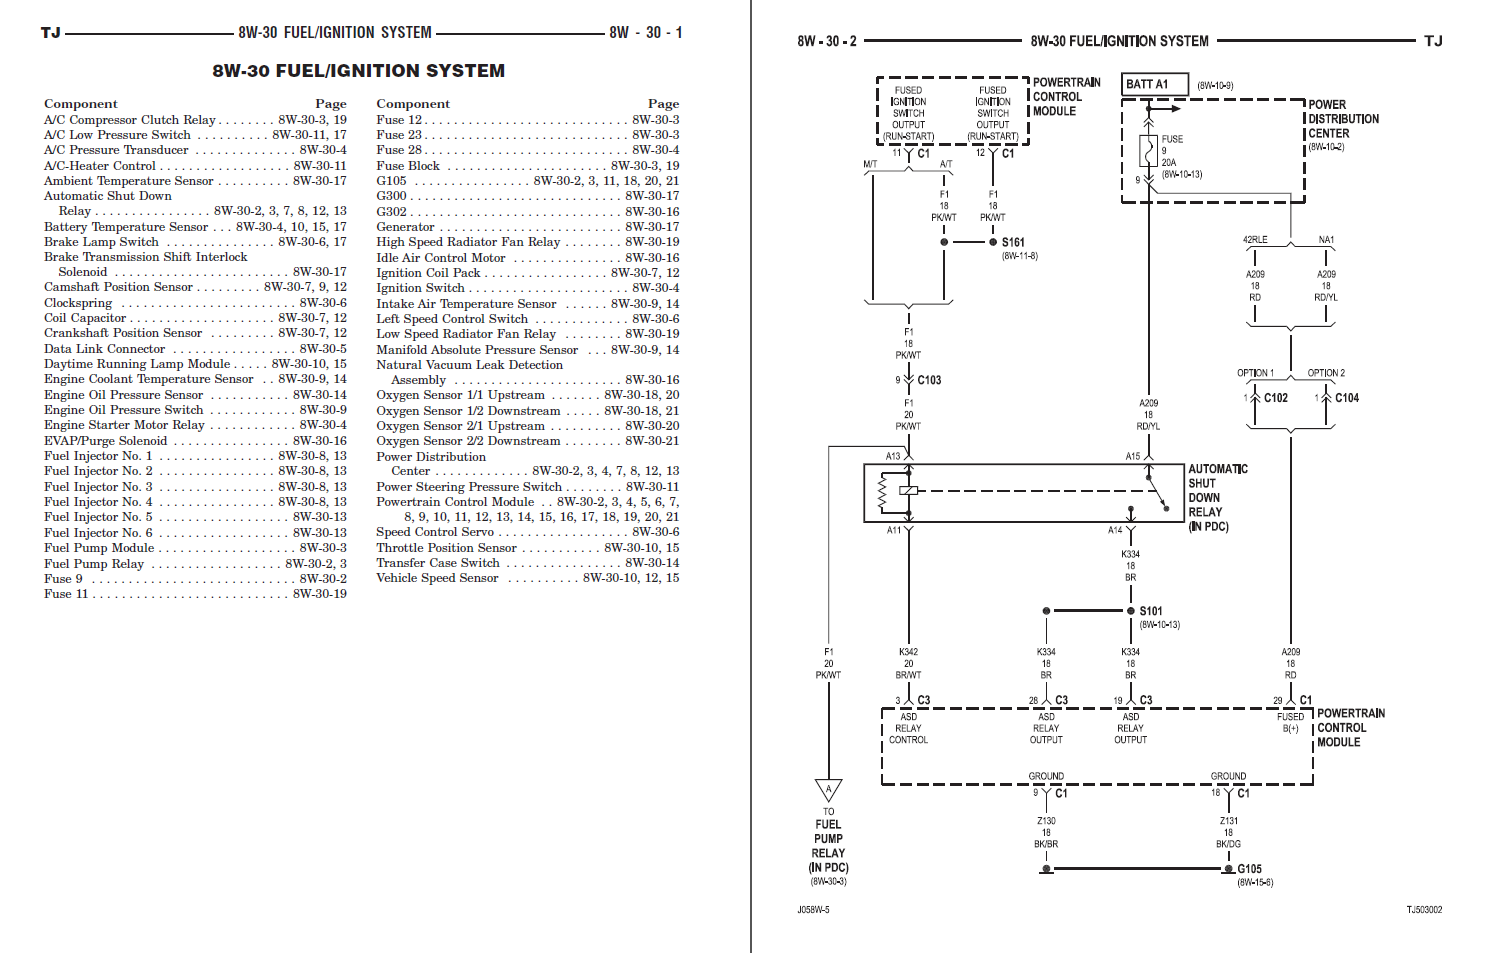 Sample wiring. Sample wiring. 2002 Jeep Wrangler TJ Factory Repair Service  Manual. Free Shipping